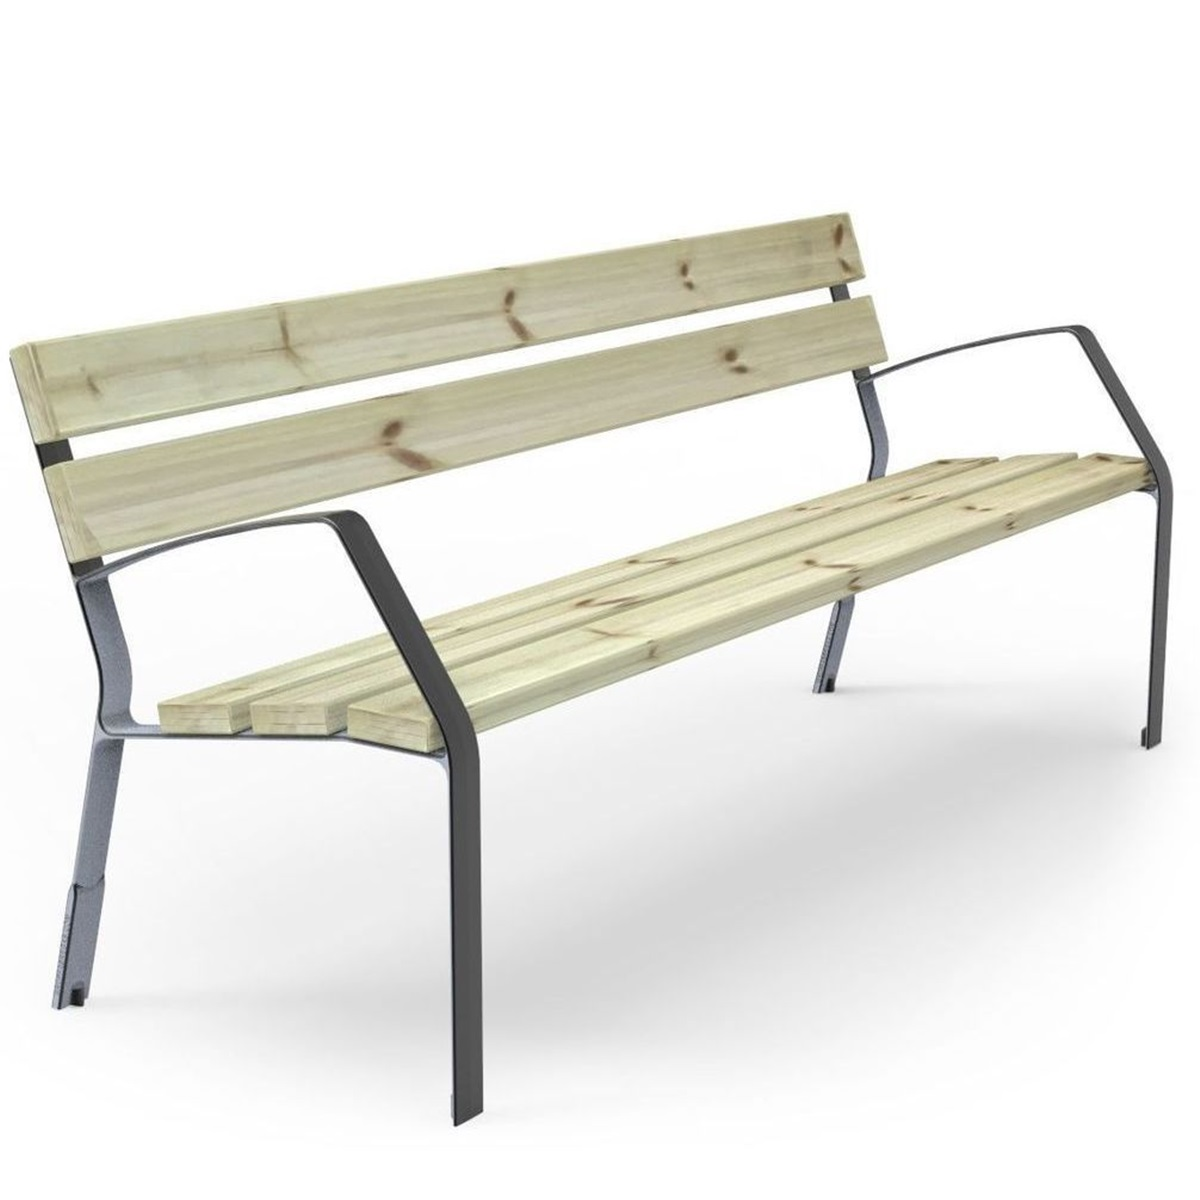 Bench MODO08-1800-5-PC